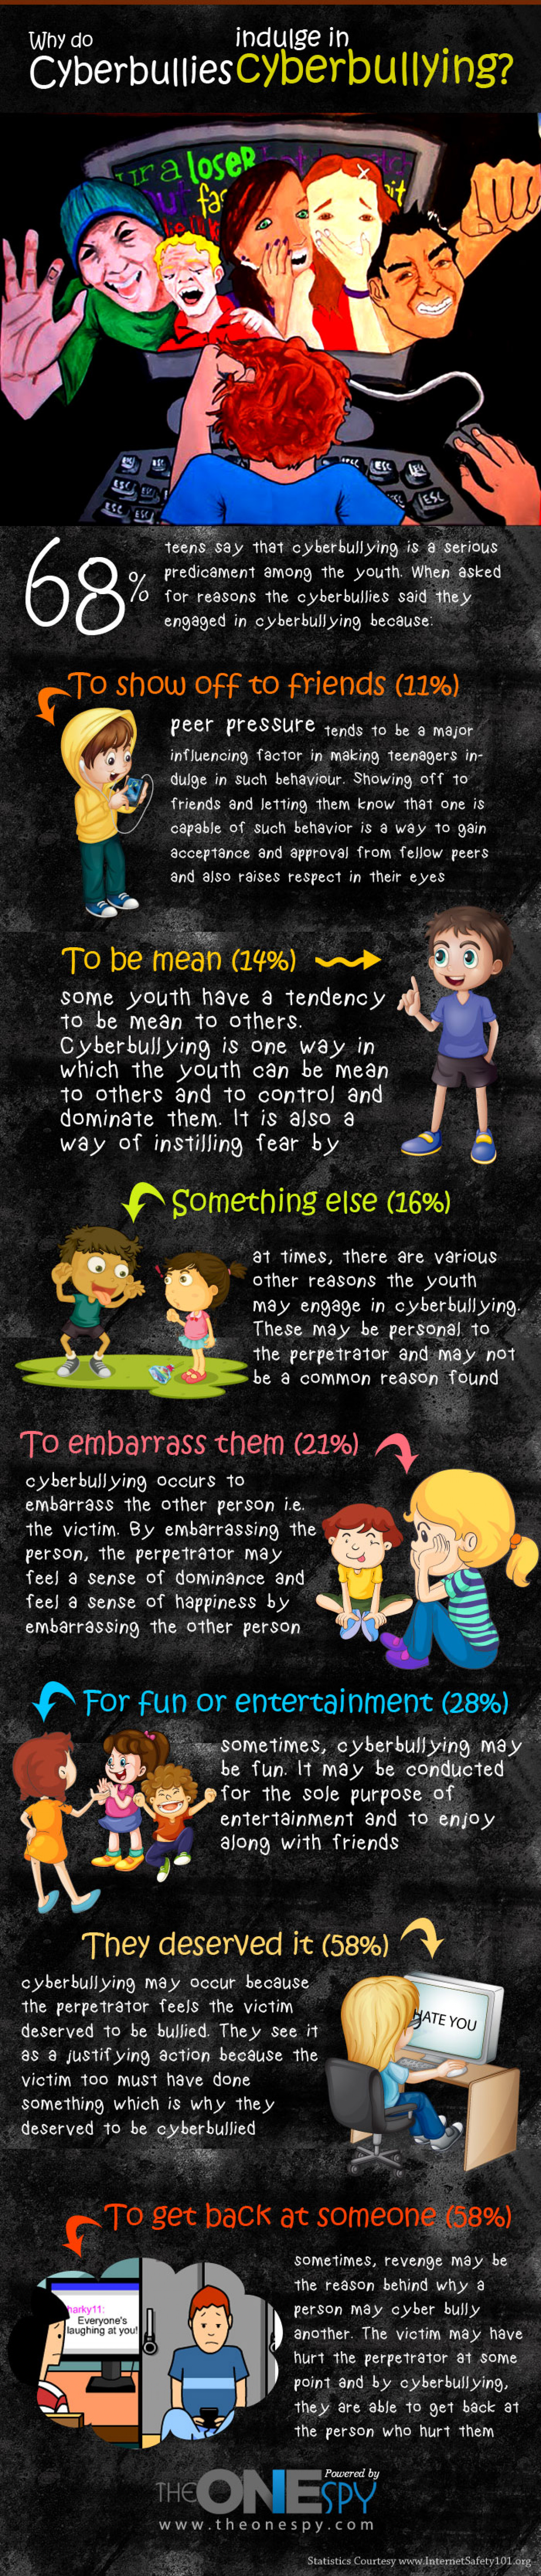 Why do Cyberbullies indulge in Cyberbullying? Infographic